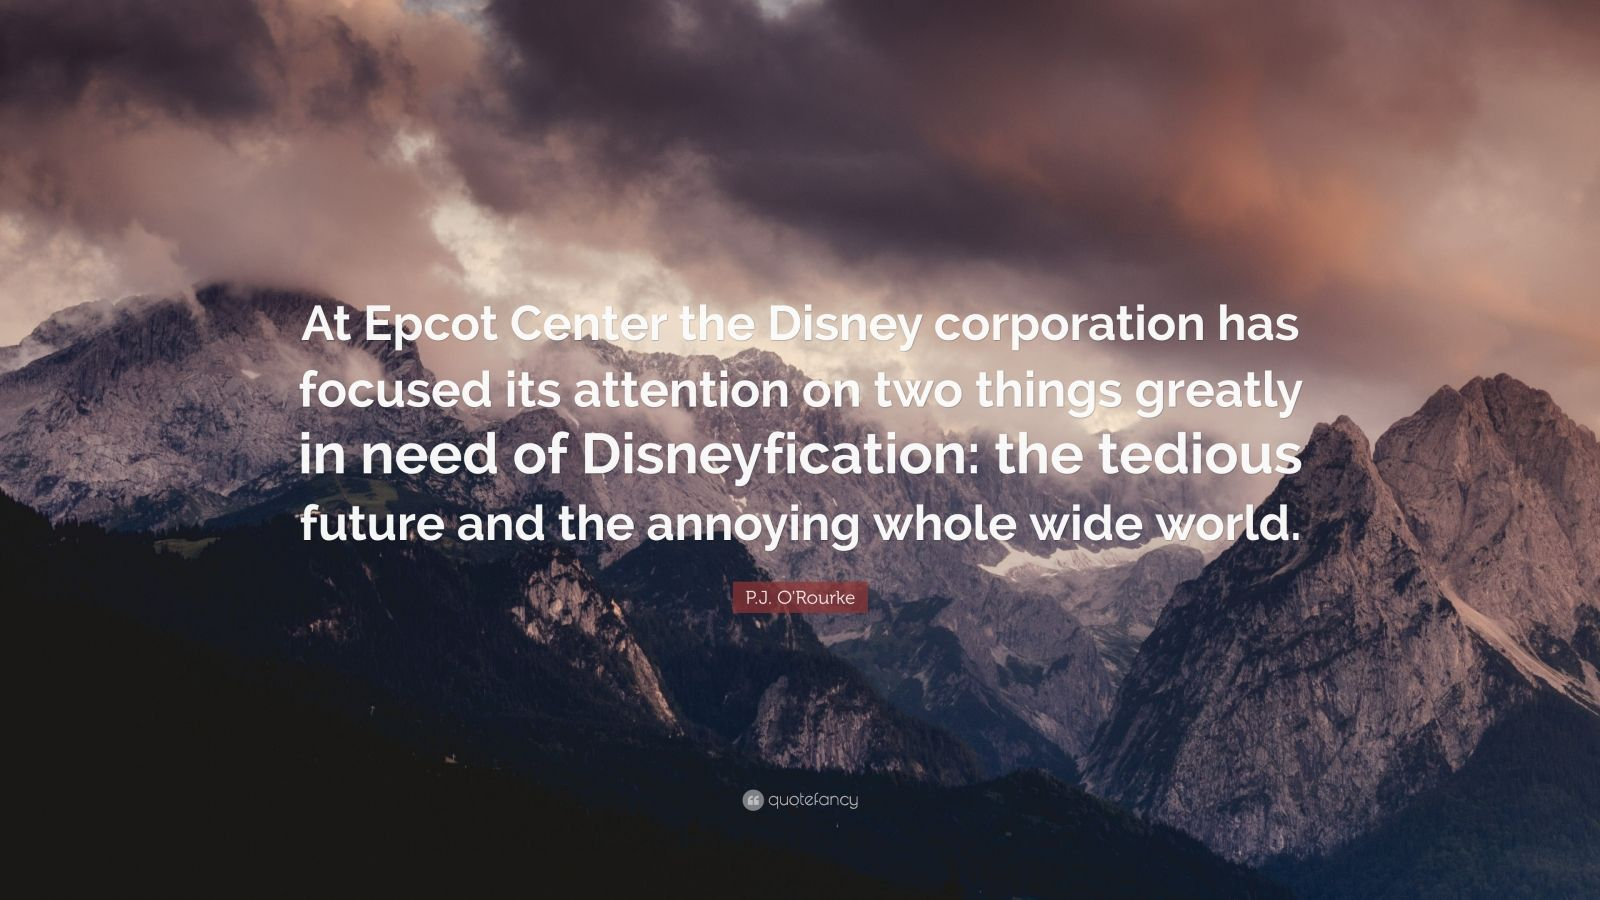 """P.J. O'Rourke Quote: """"At Epcot Center the Disney corporation has focused its attention on two things greatly in need of Disneyfication: the tedious future and the annoying whole wide world."""""""